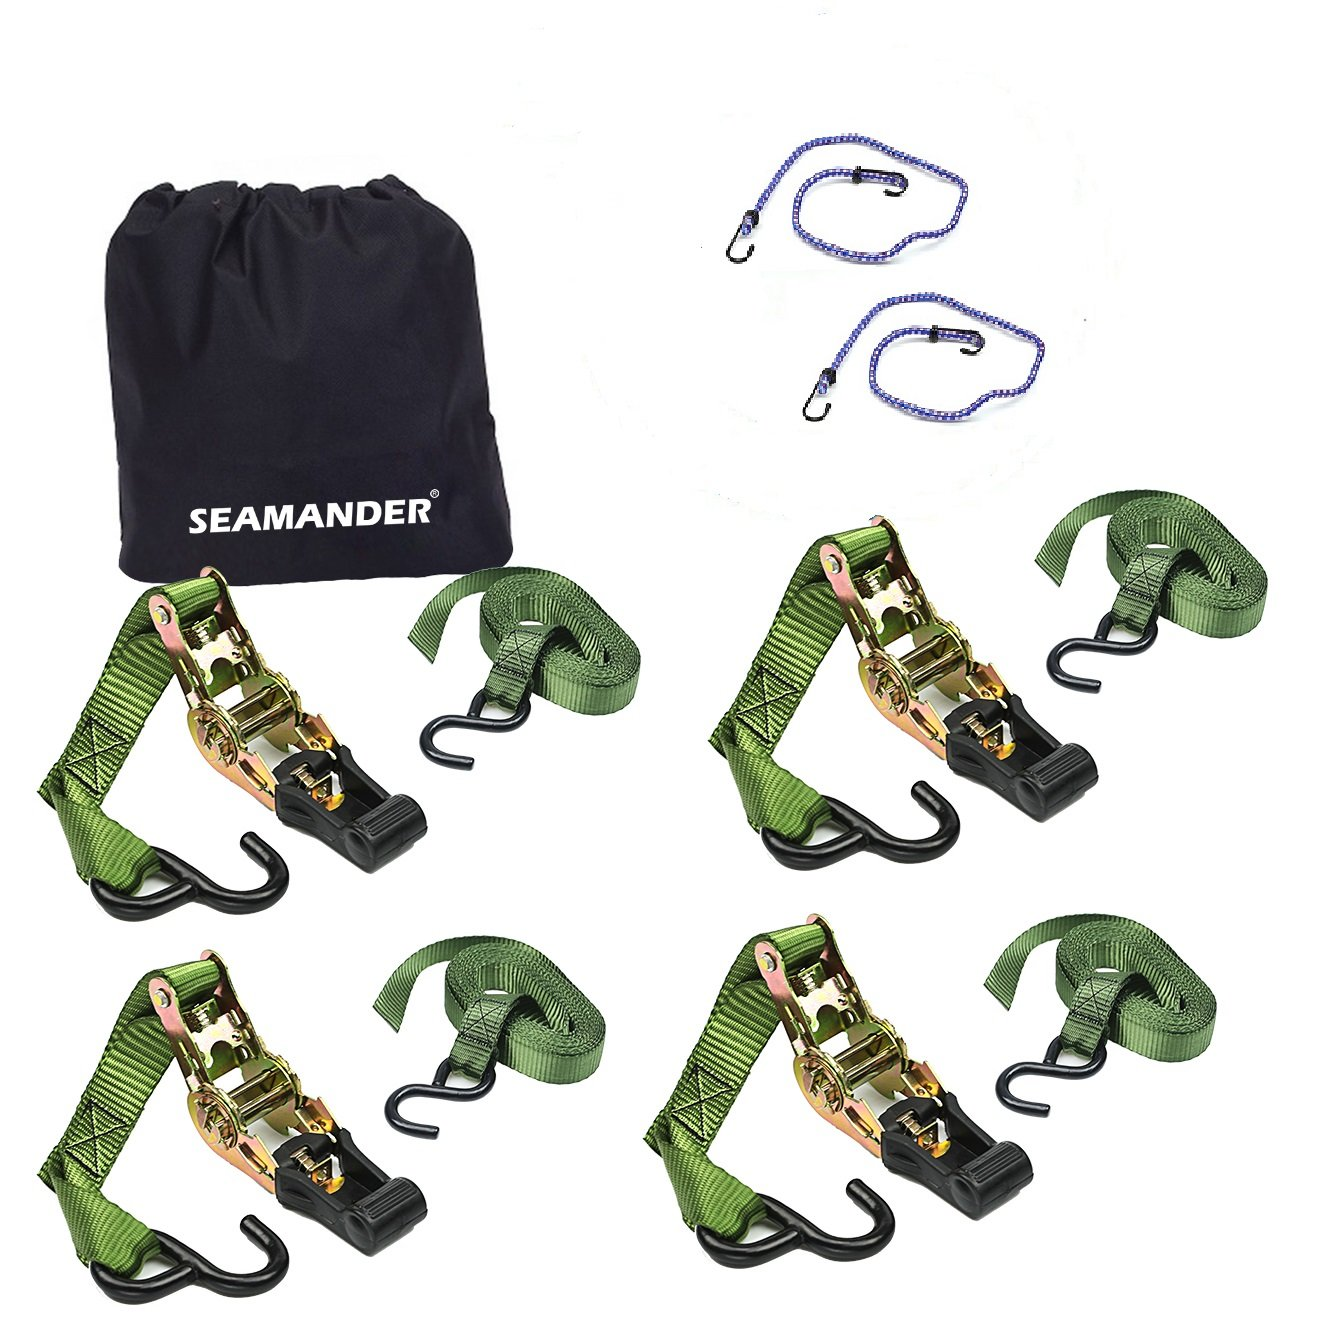 Seamander Ratchet Tie Down Straps 500 Load Capacity & 1, 500 Lbs Breaking Strength (4 Pack & 2 Bungee Cords)